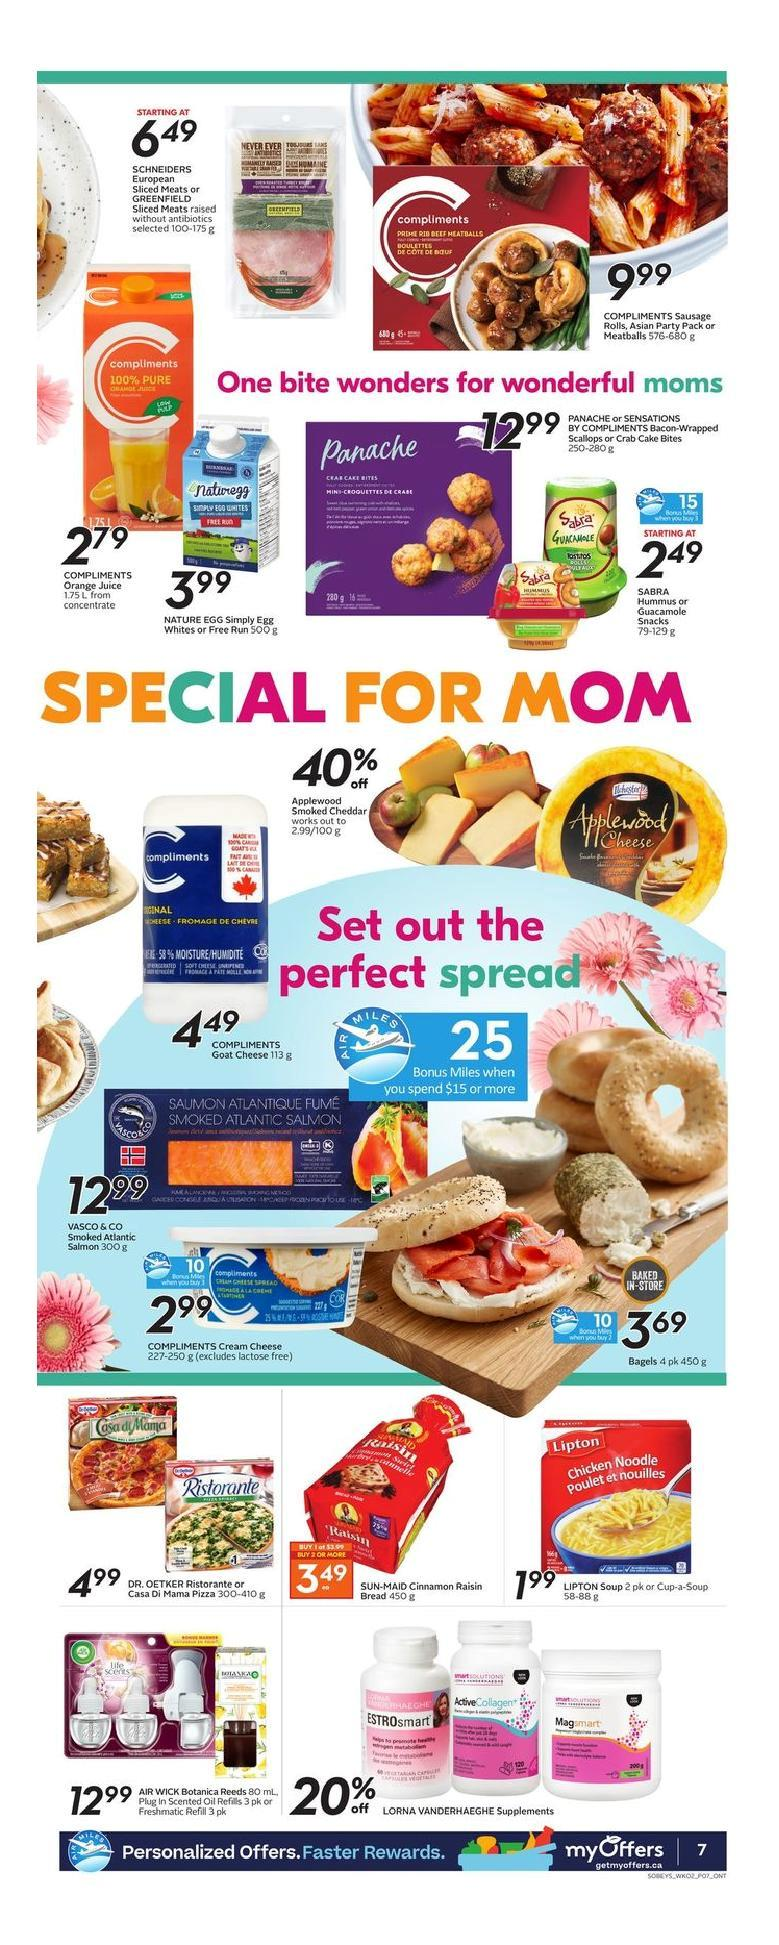 11 Sobeys ON Flyer May 6 May 12 2021